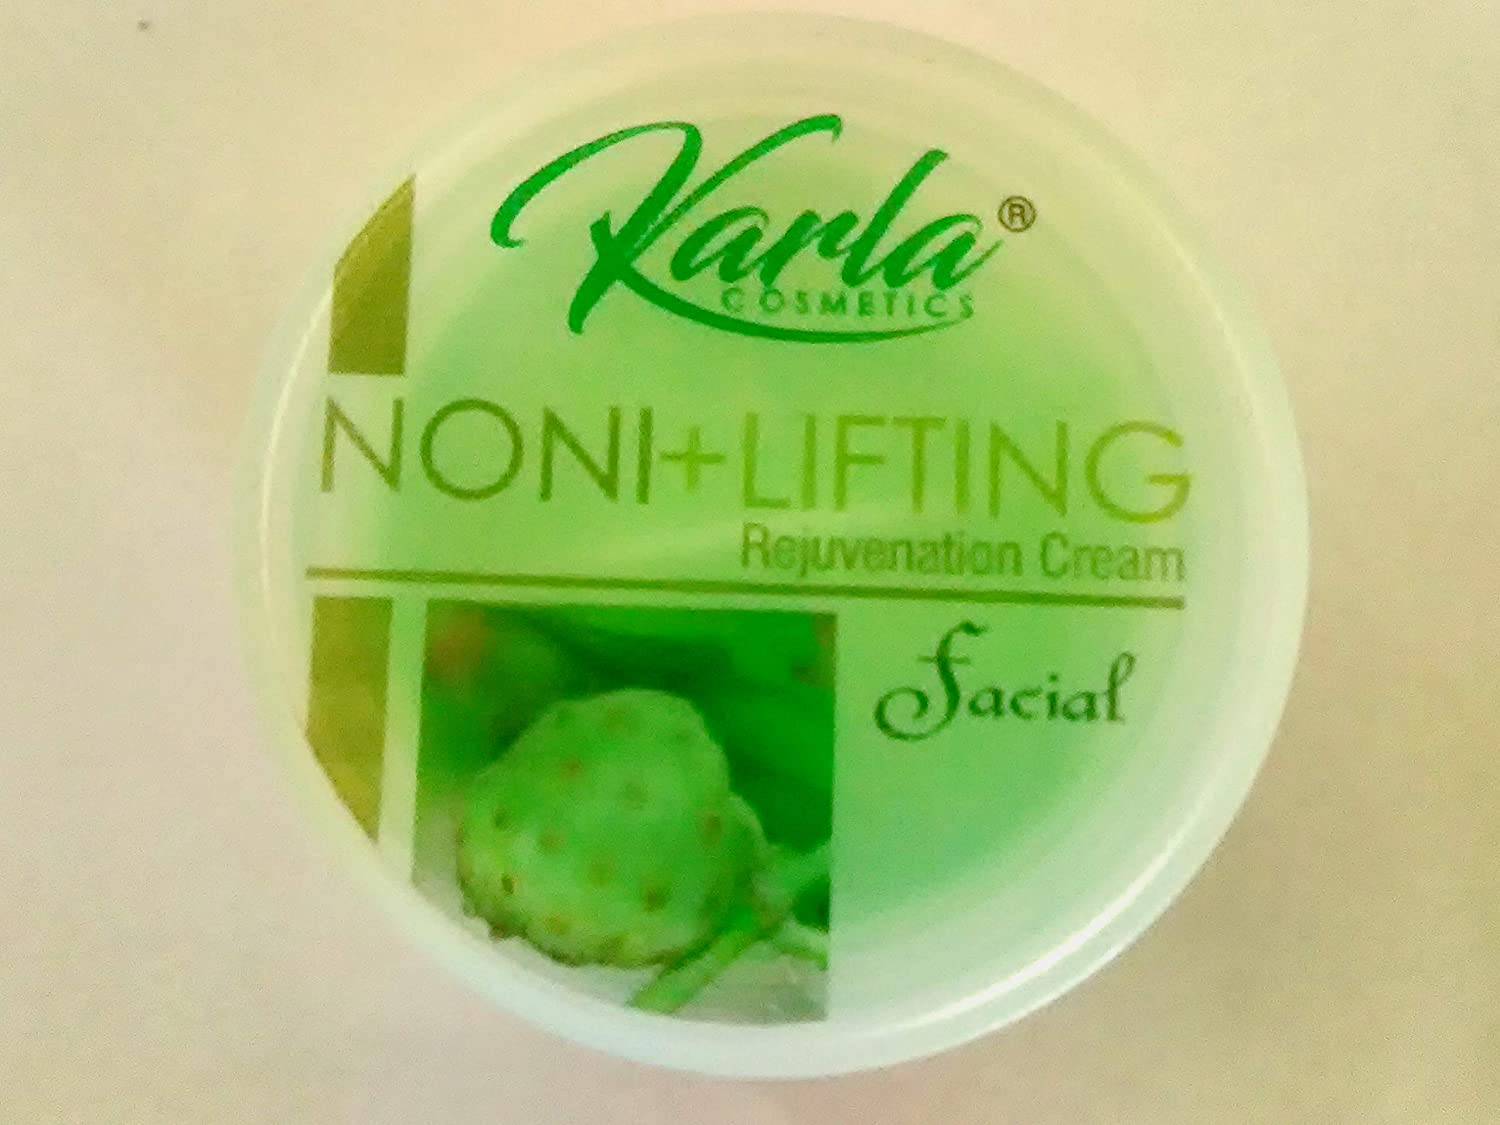 Amazon.com: Noni+lifting Karla Dominicana Cosméticos ...